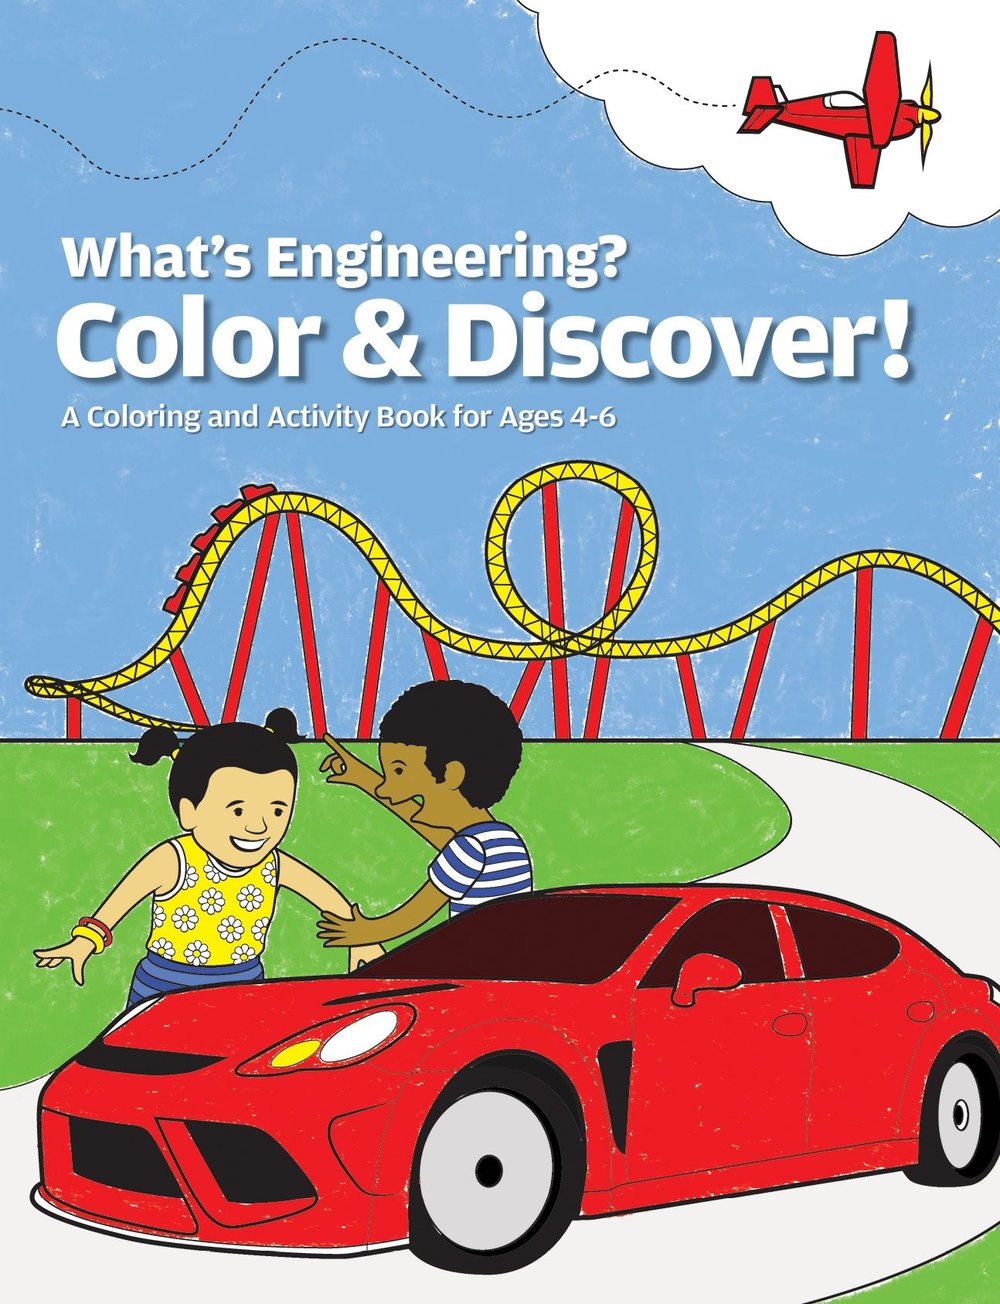 This 20-page coloring and activity book shows kids that the engineered world is all around them all the time.